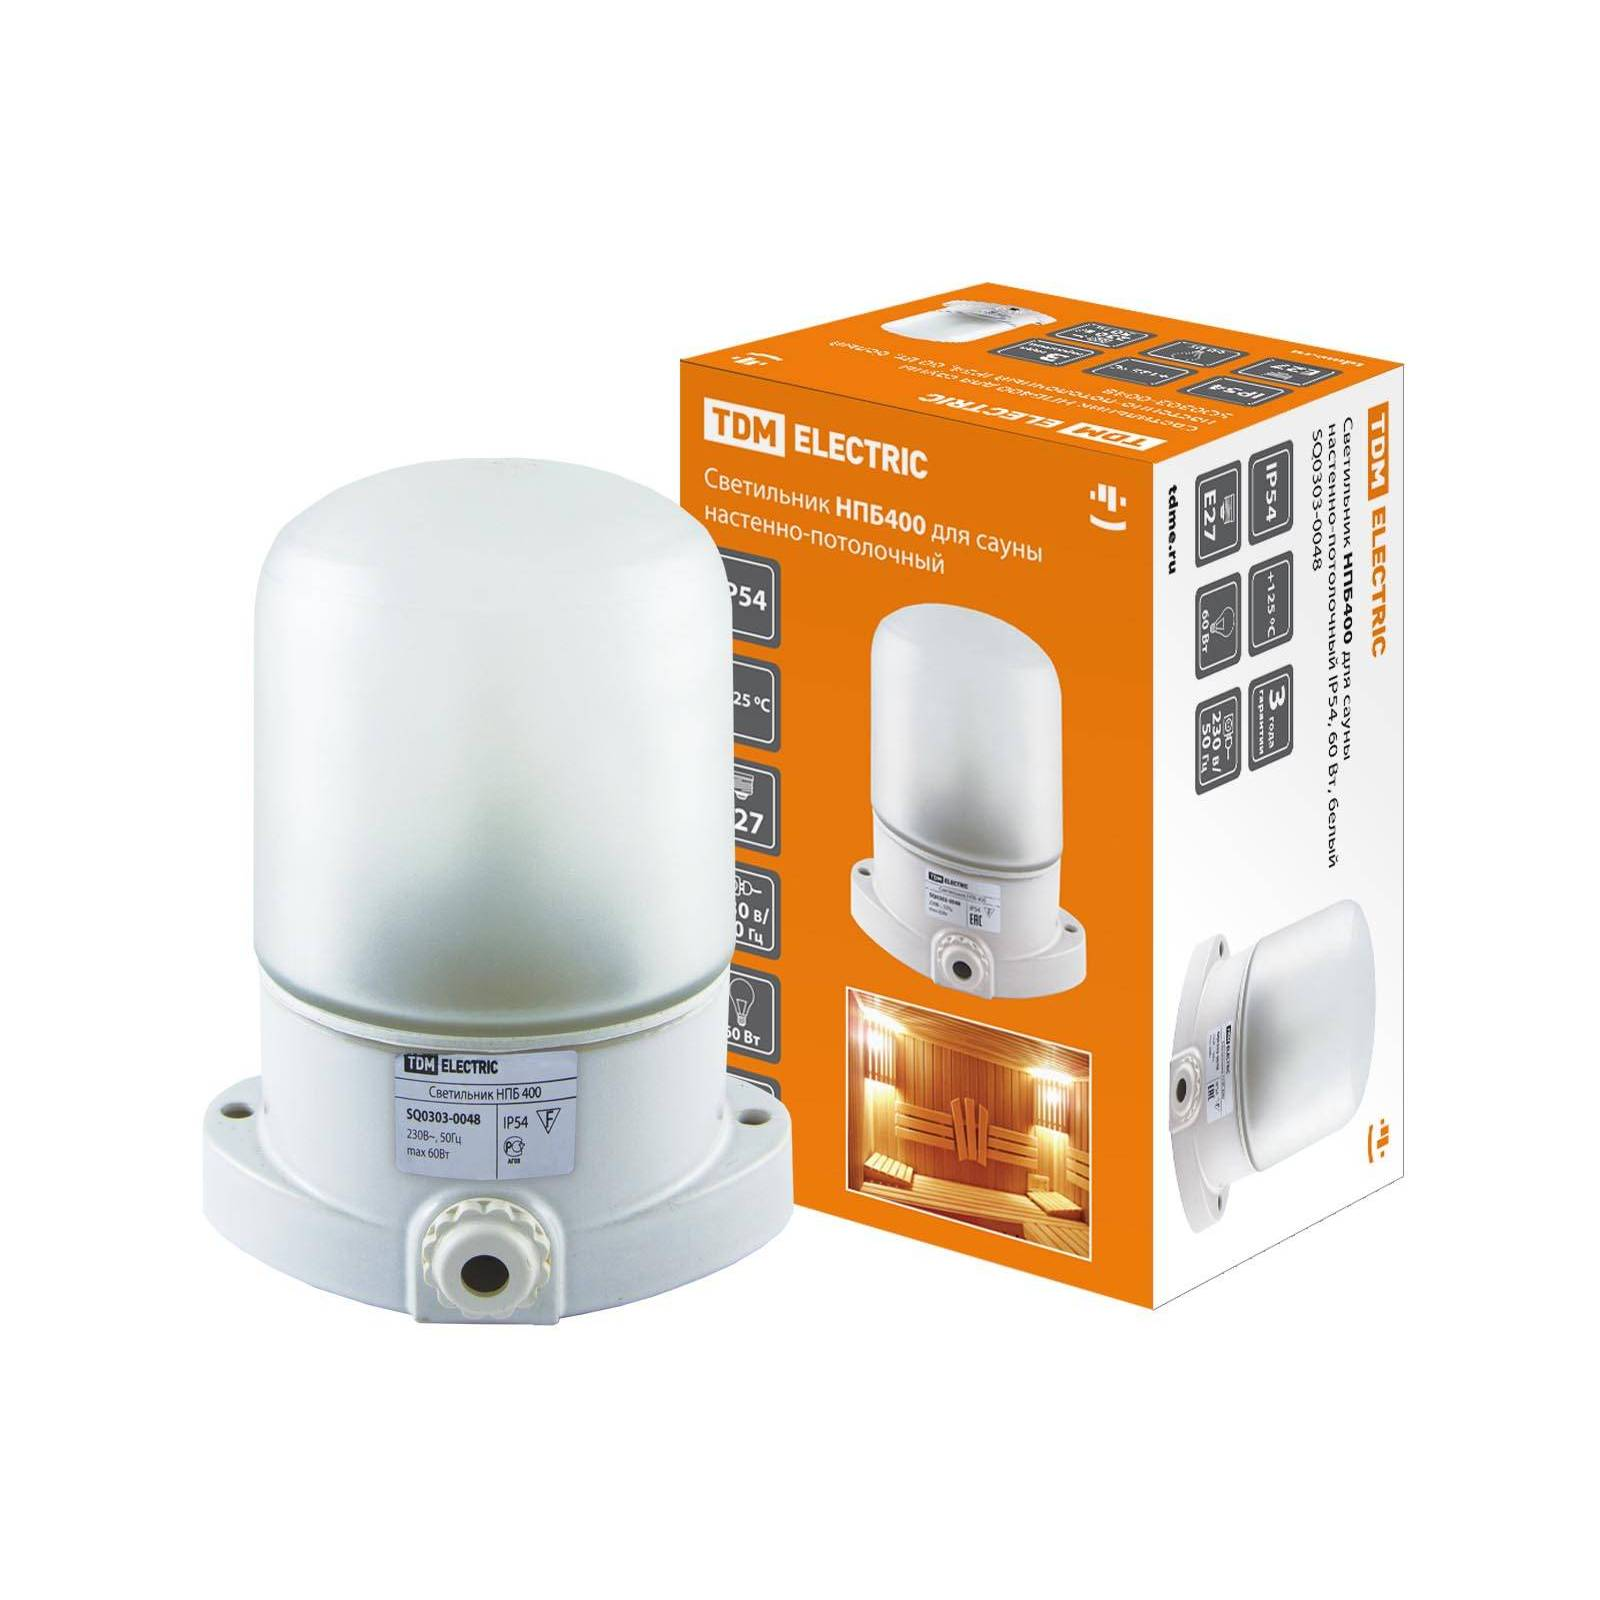 Lamp NPB 400 For Sauna Wall-ceiling White, IP54, 60 W, White, TDM Sq0303-0048